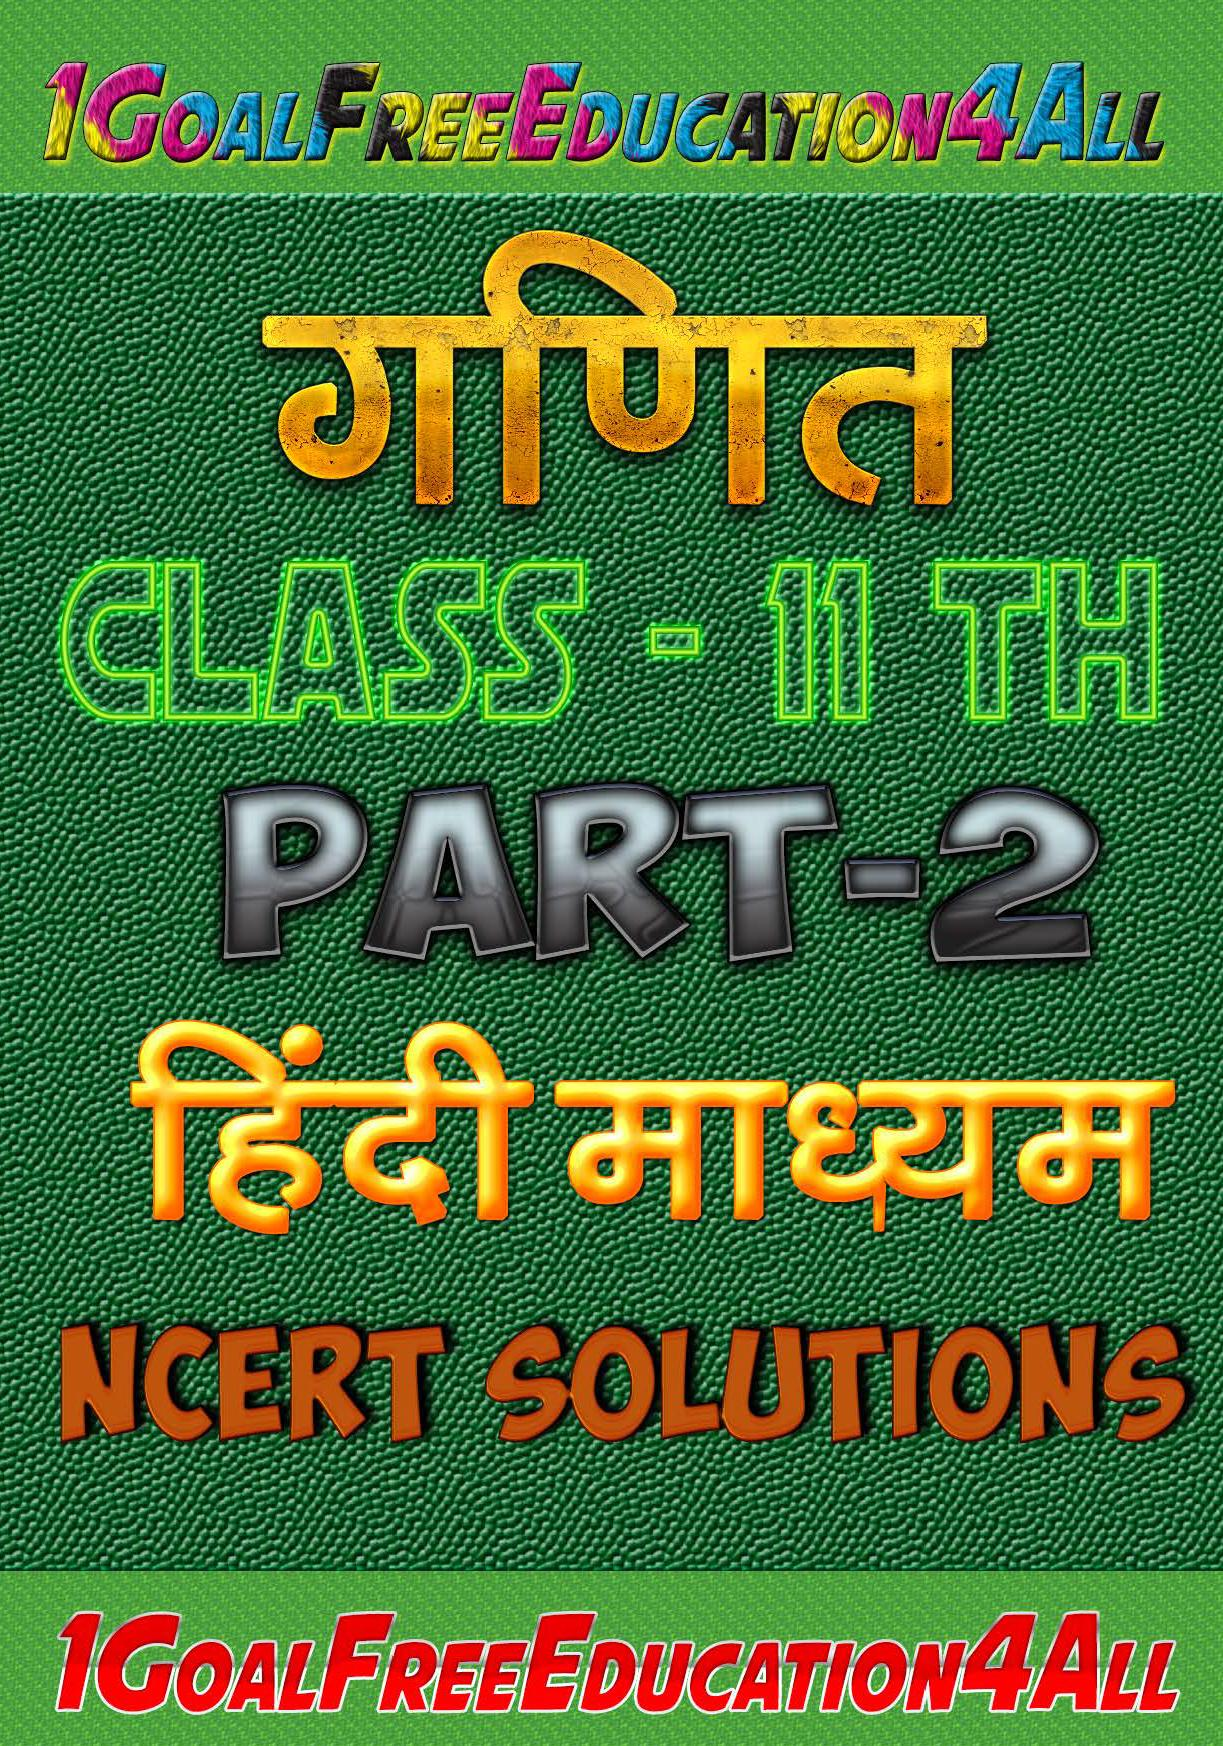 11th class maths solution in hindi Part-2 for Android - APK